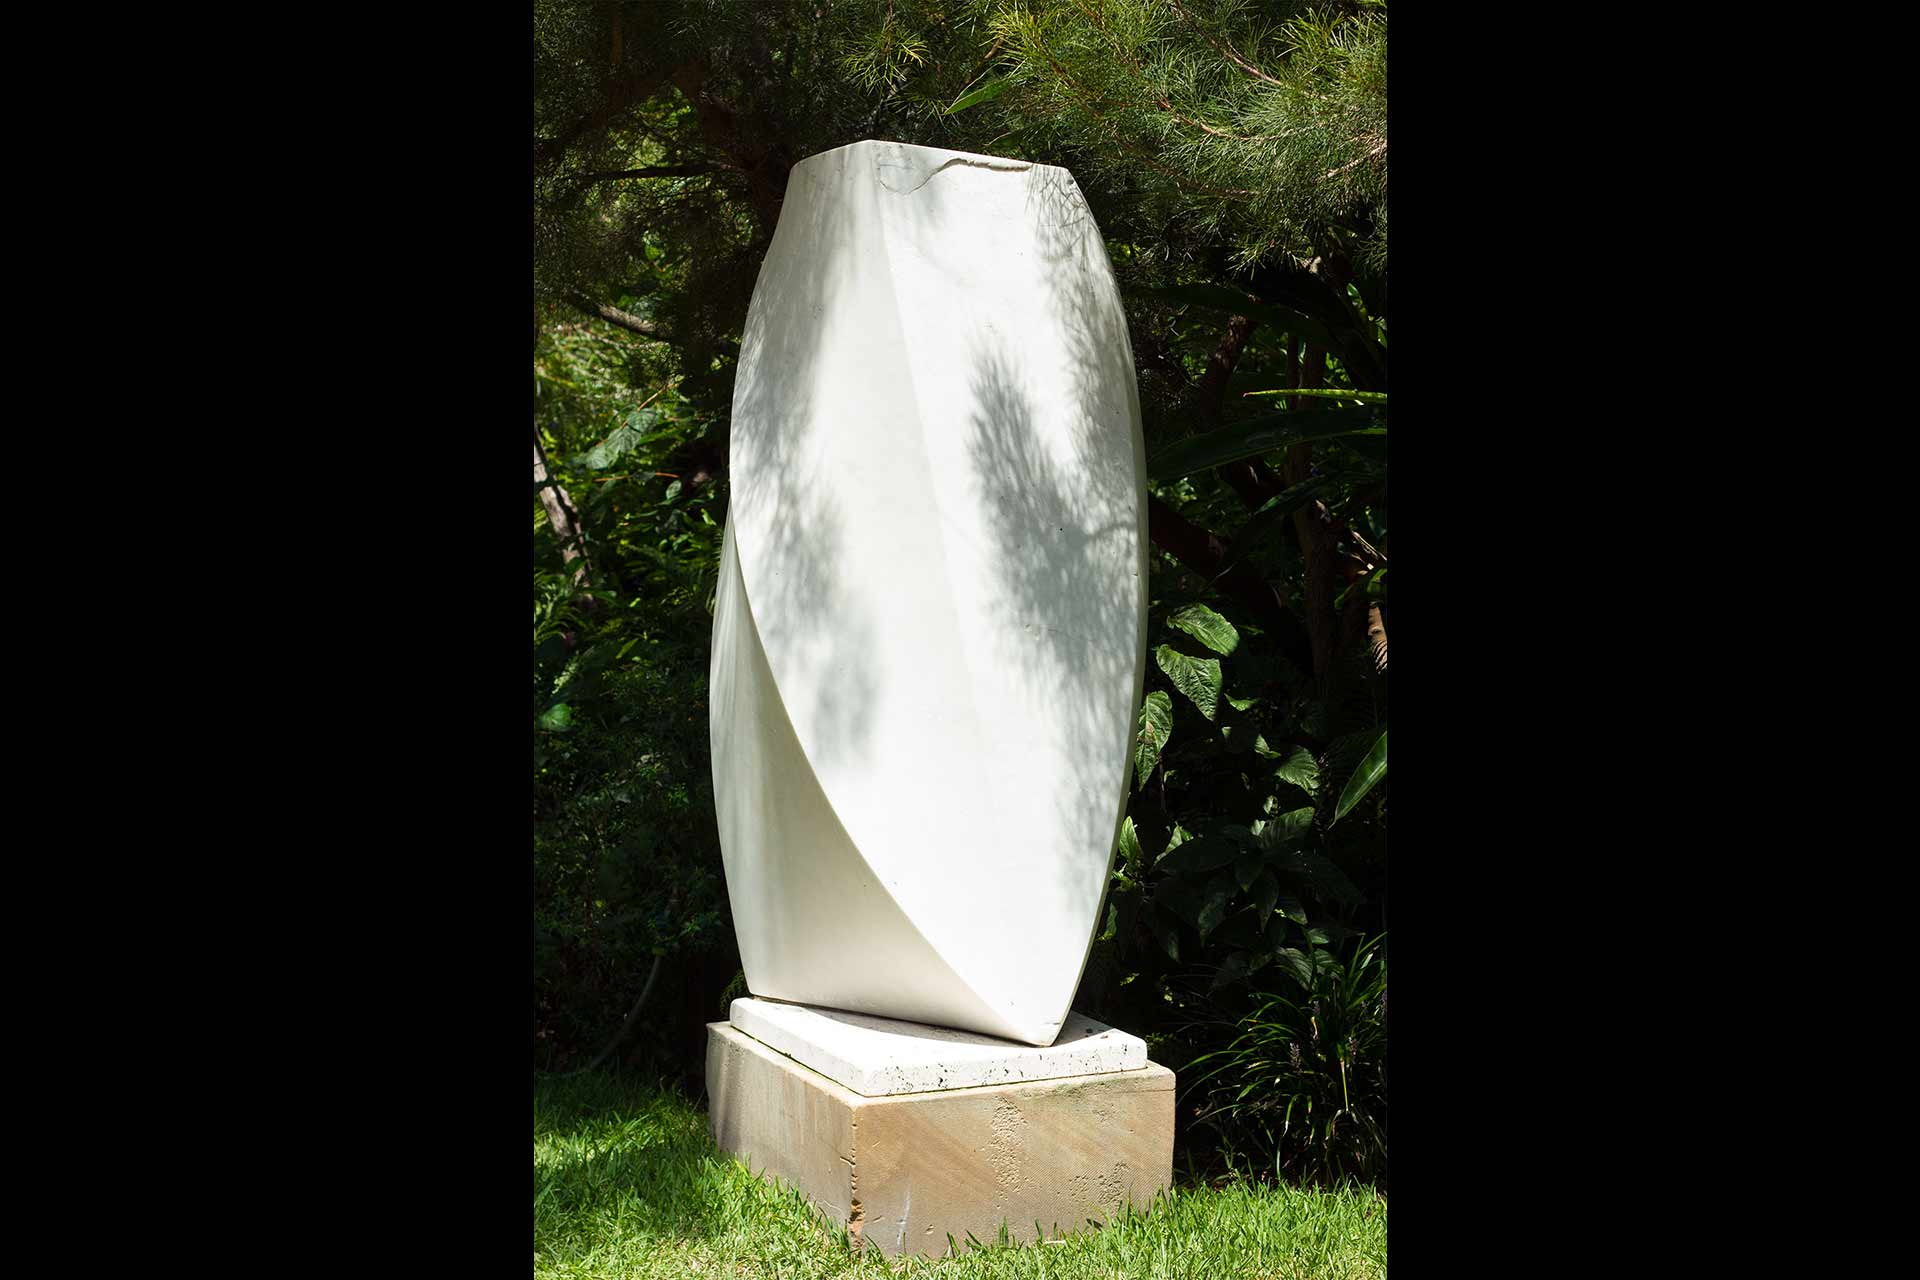 Wendy's Garden Marble Statue By Robert DuBourg